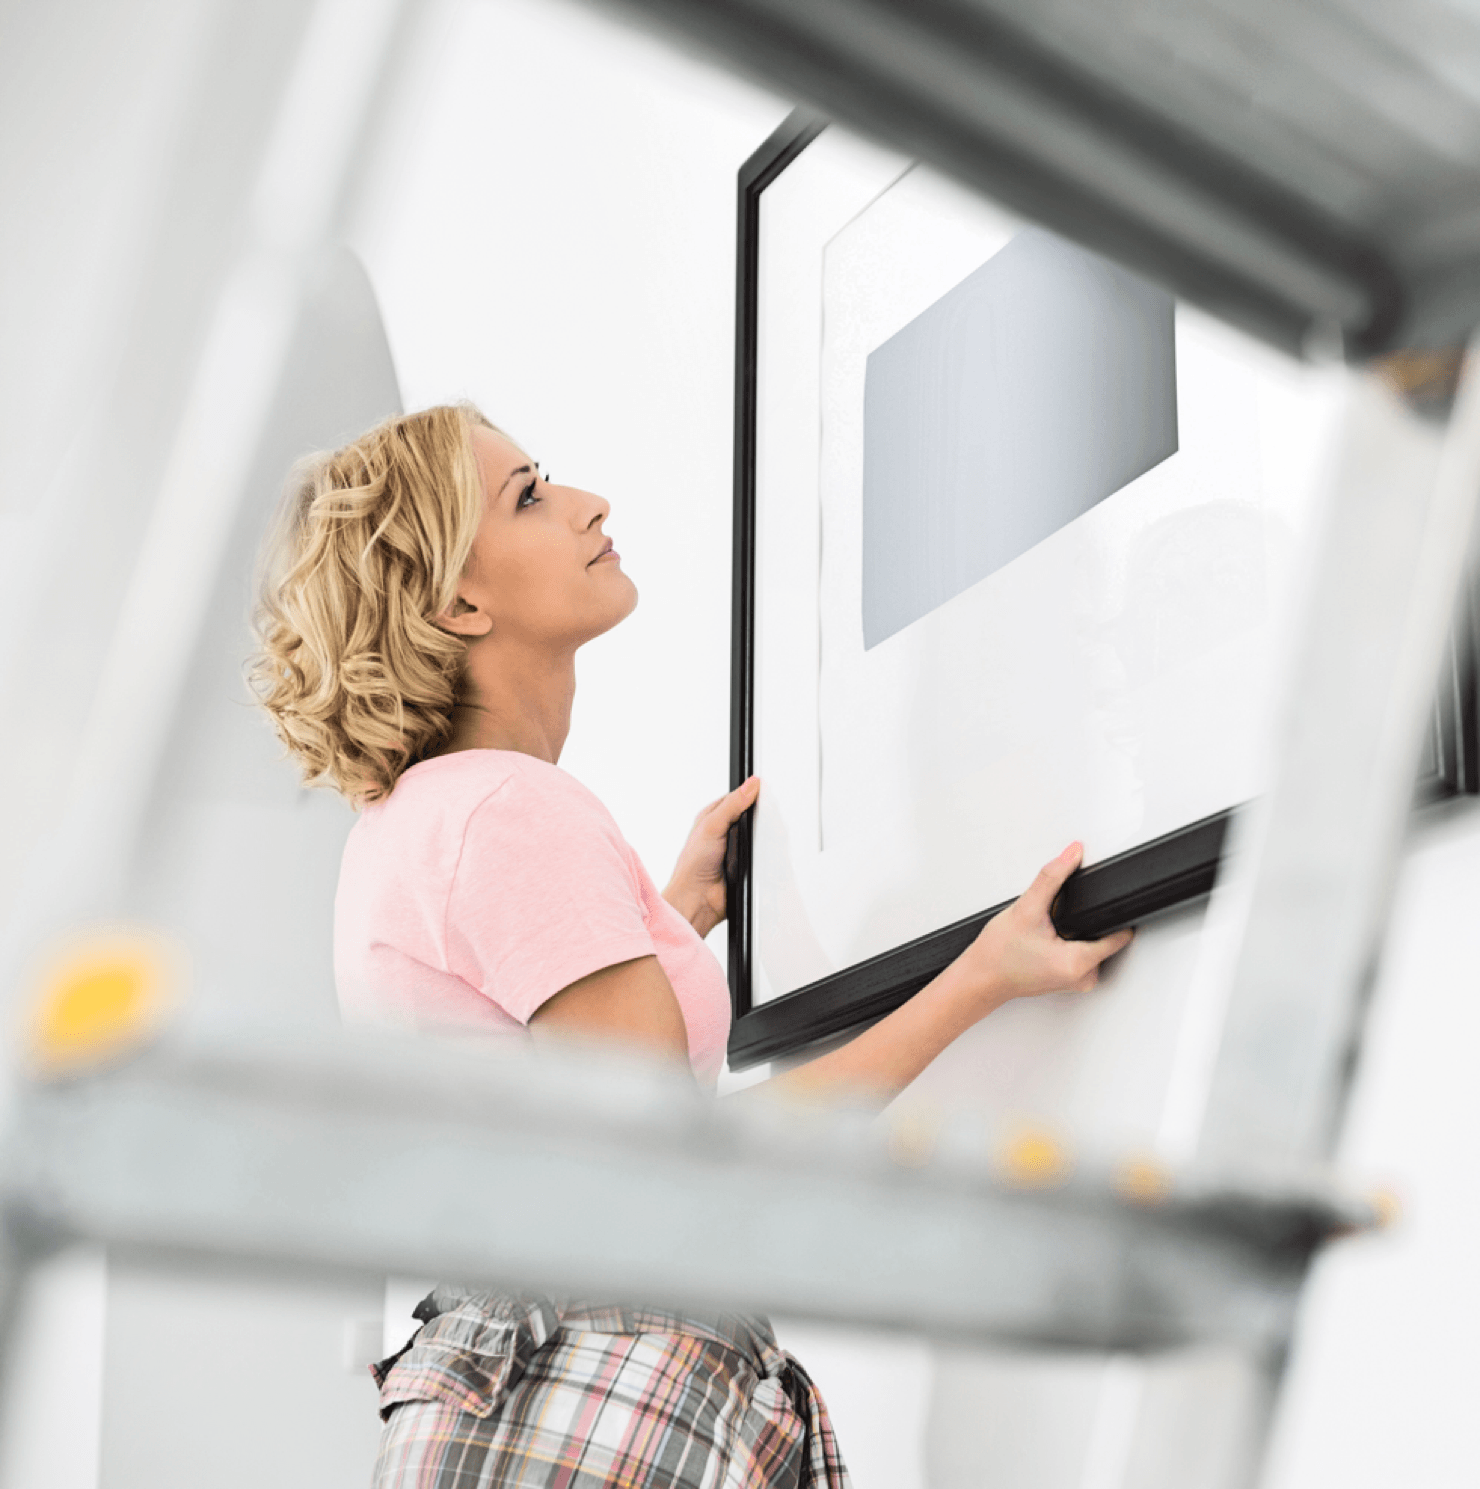 9 Home Decor Mistakes You Didn't Know You Were Making Woman Picture Frame Image